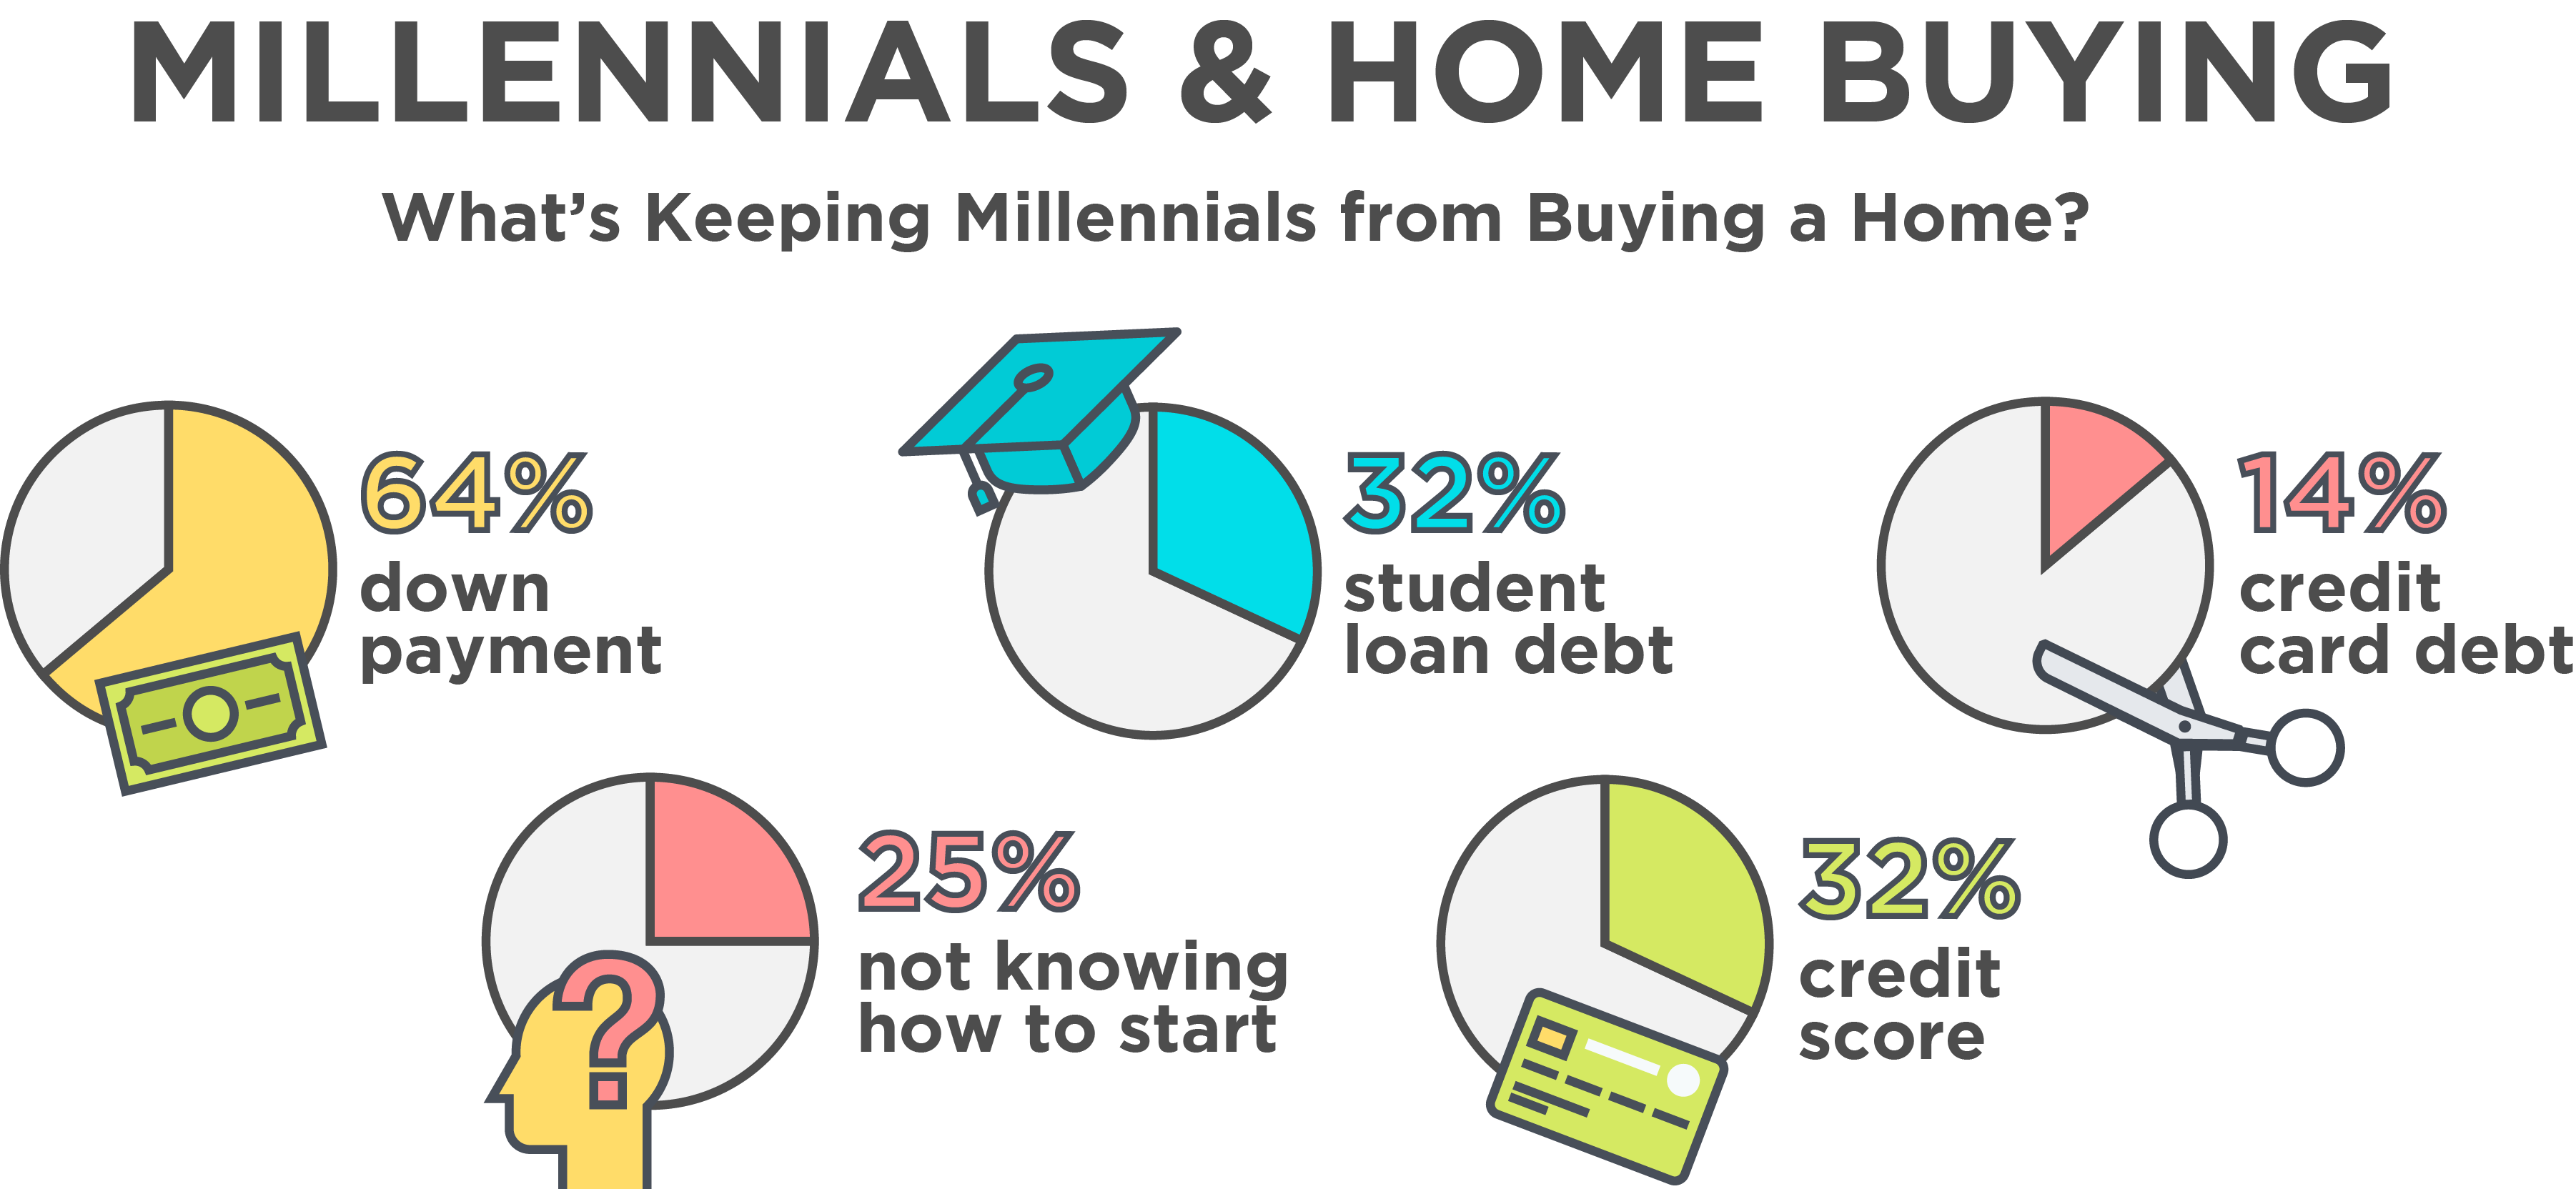 Millennials and home buying stats